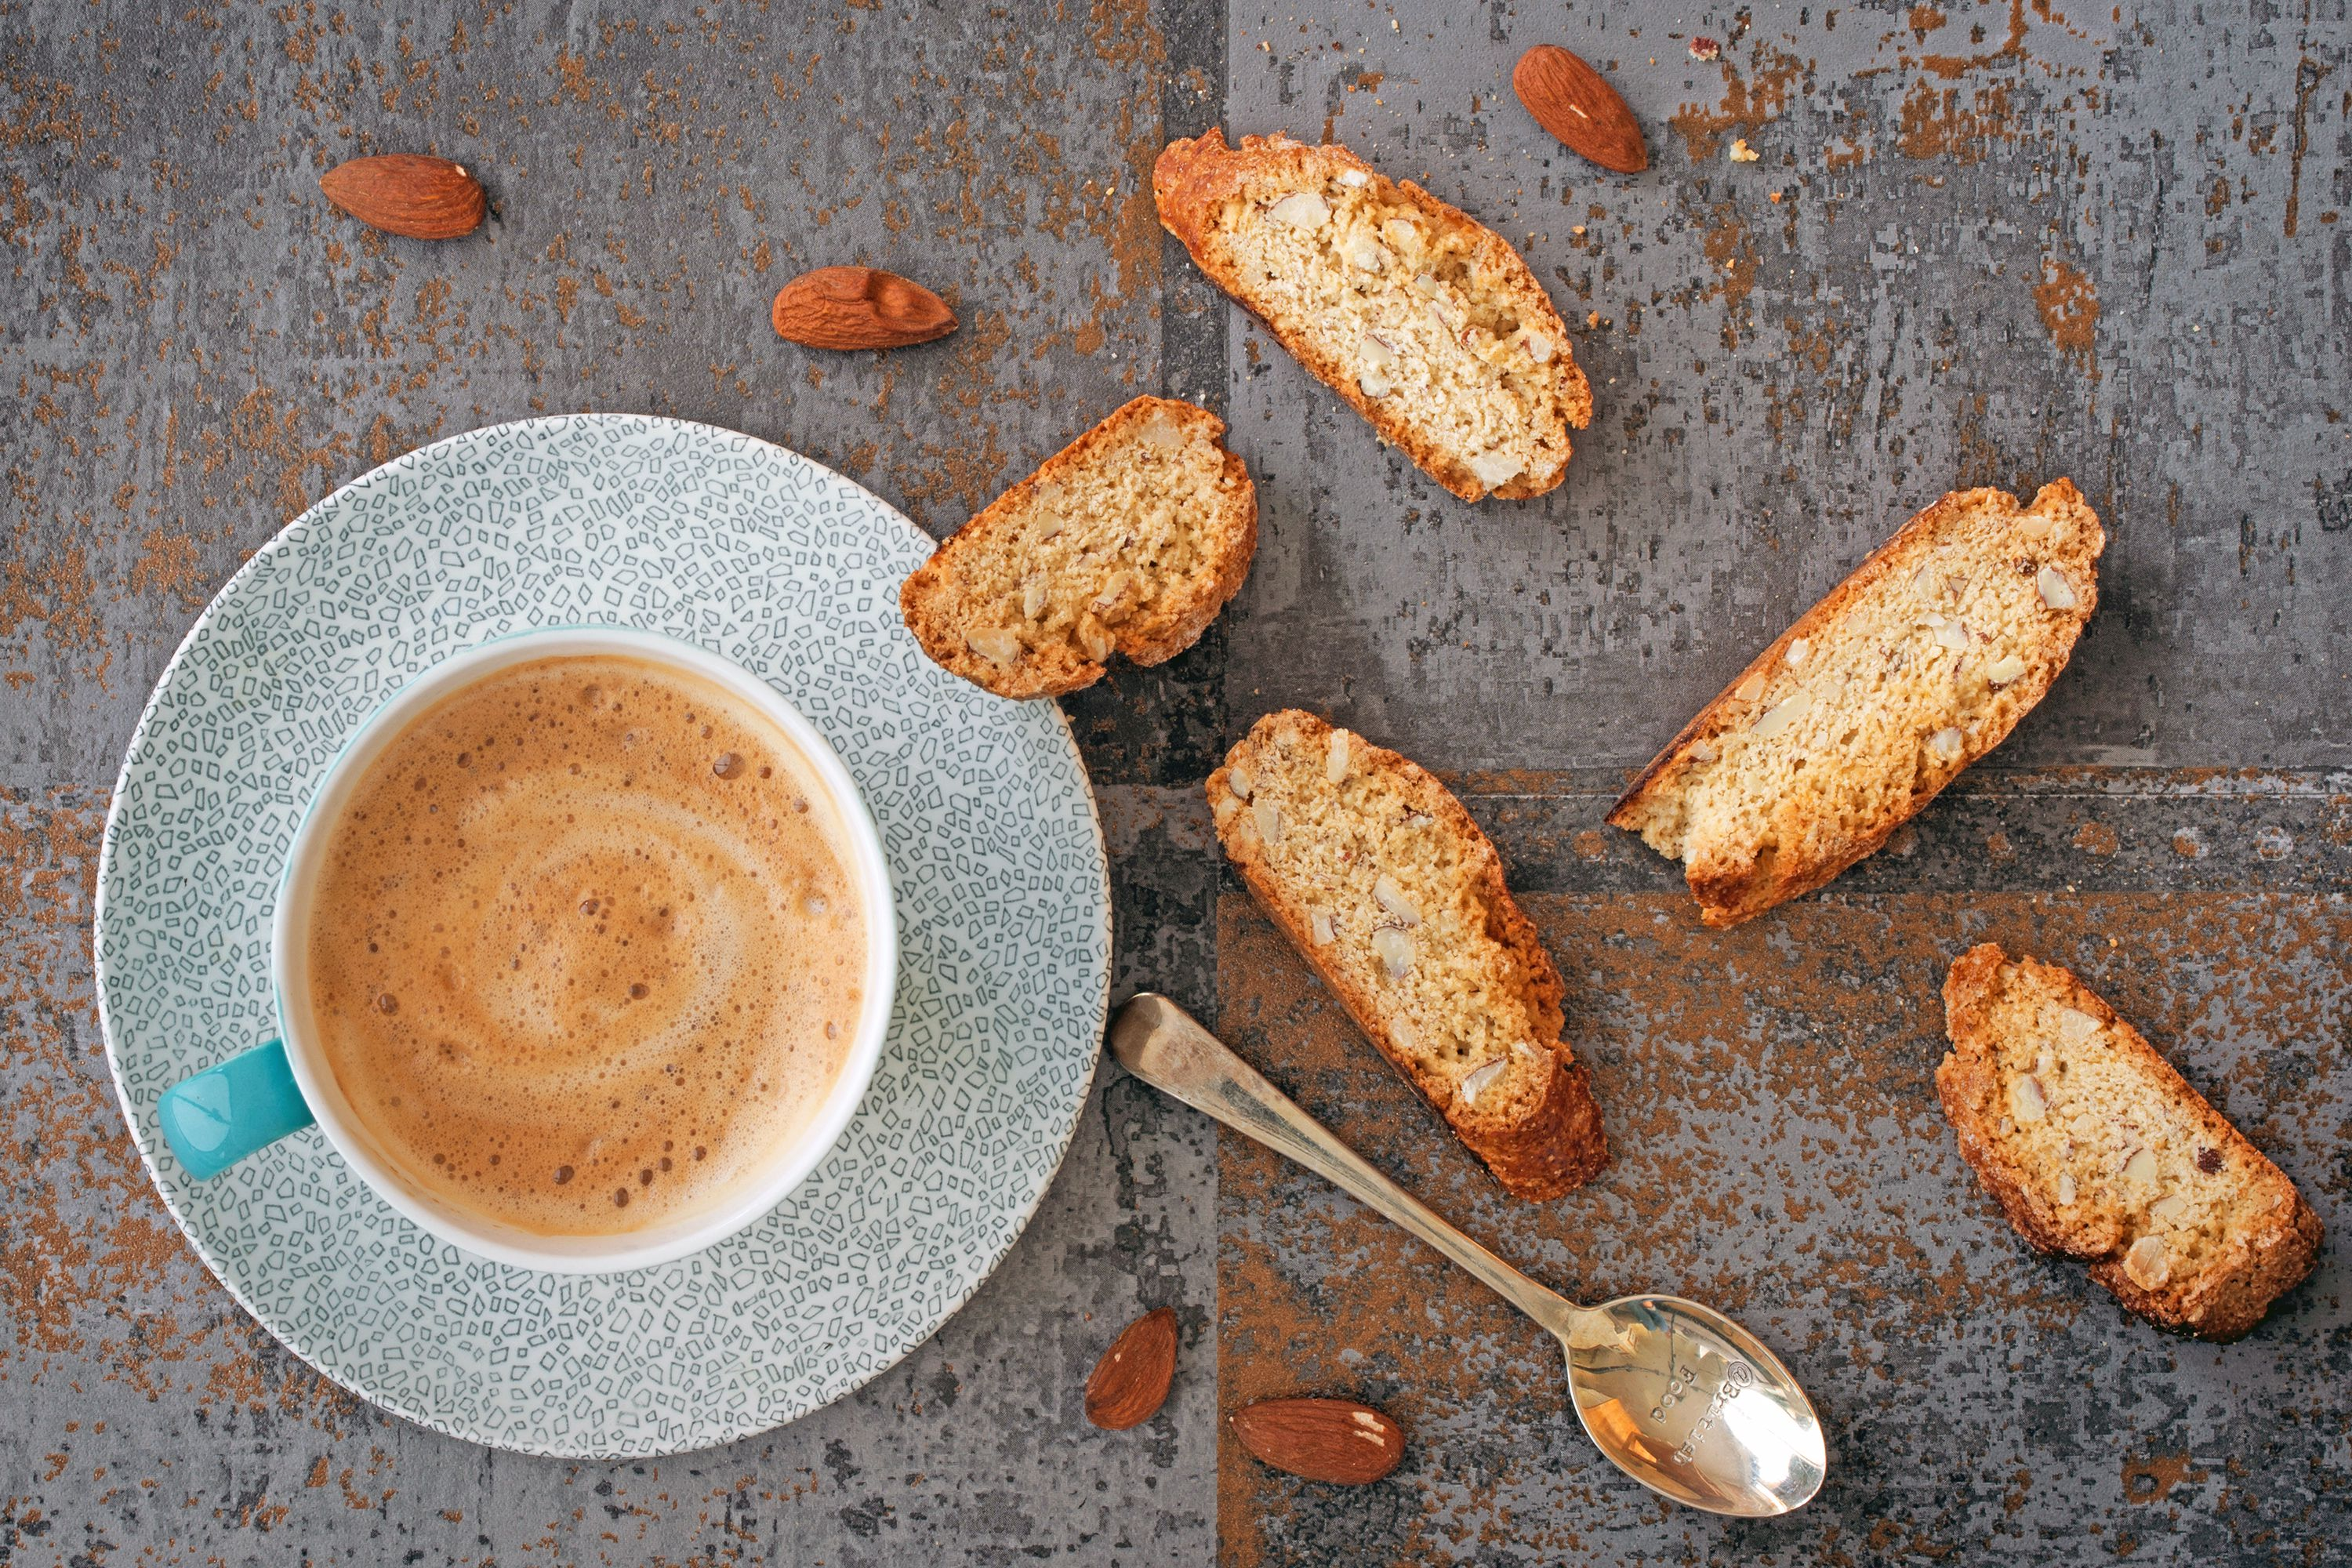 Biscotti with a cup of espresso